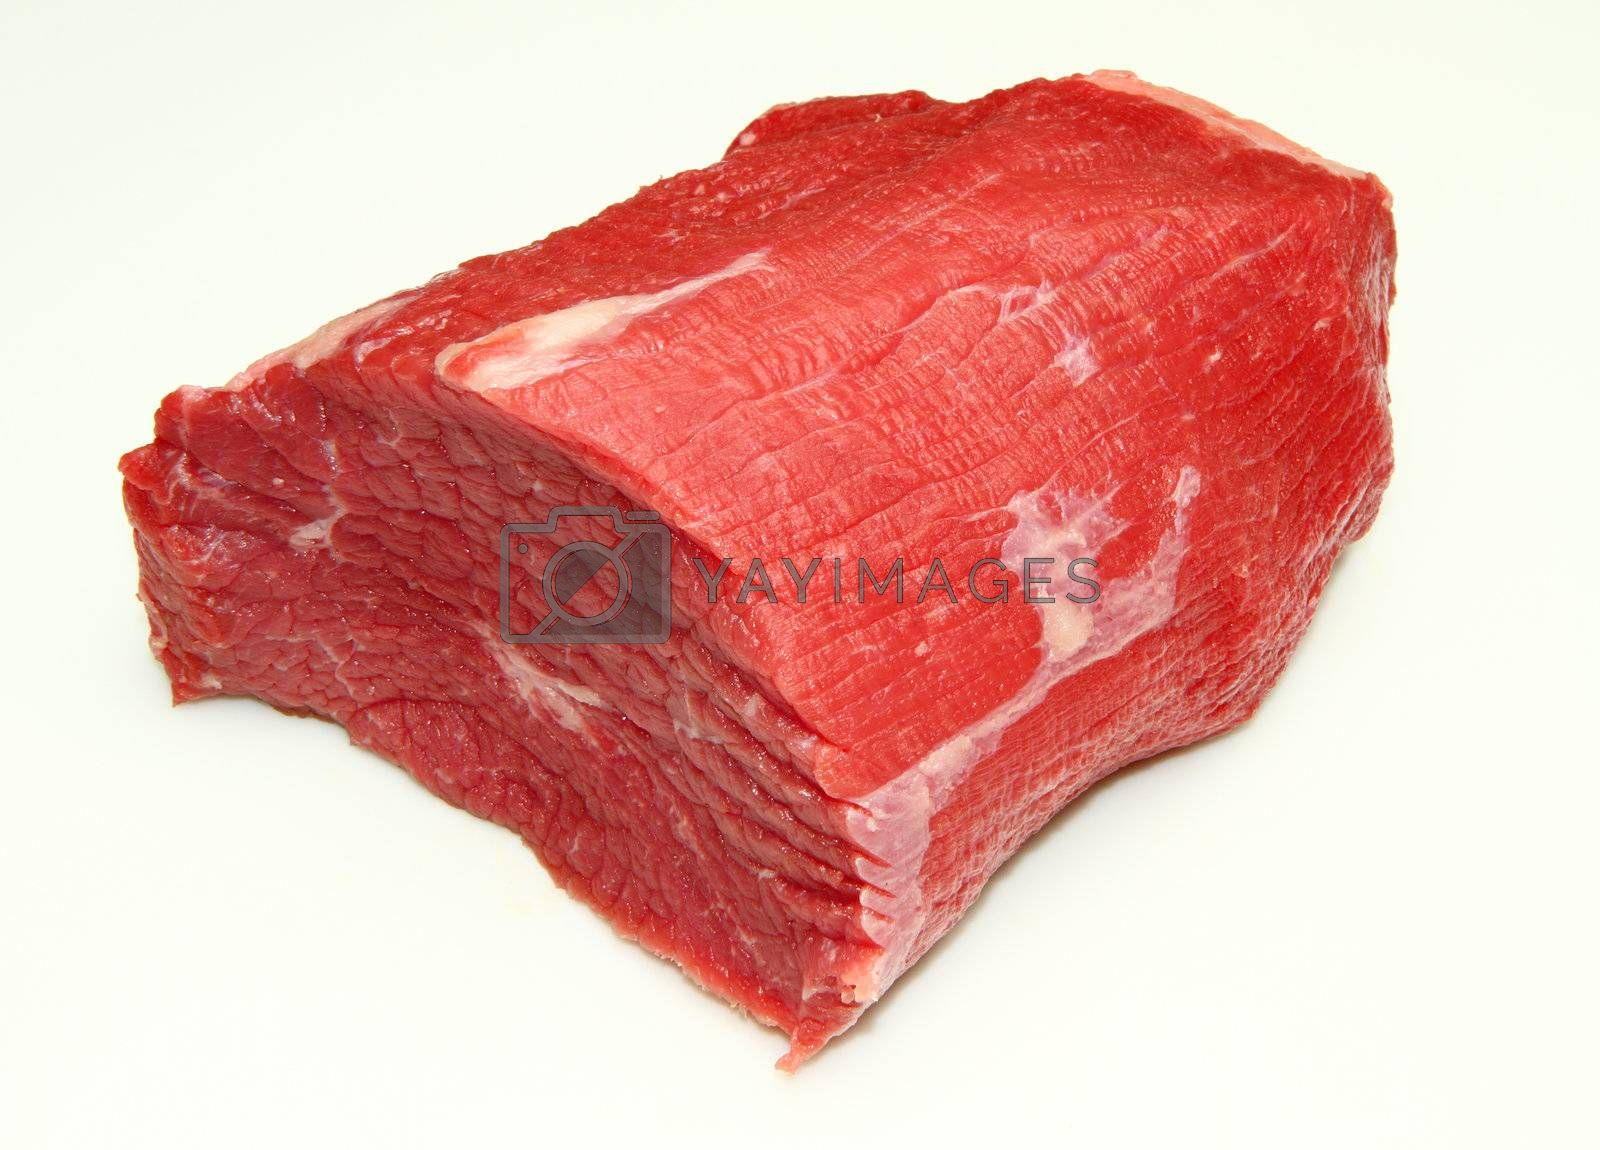 raw meat isolated on white background